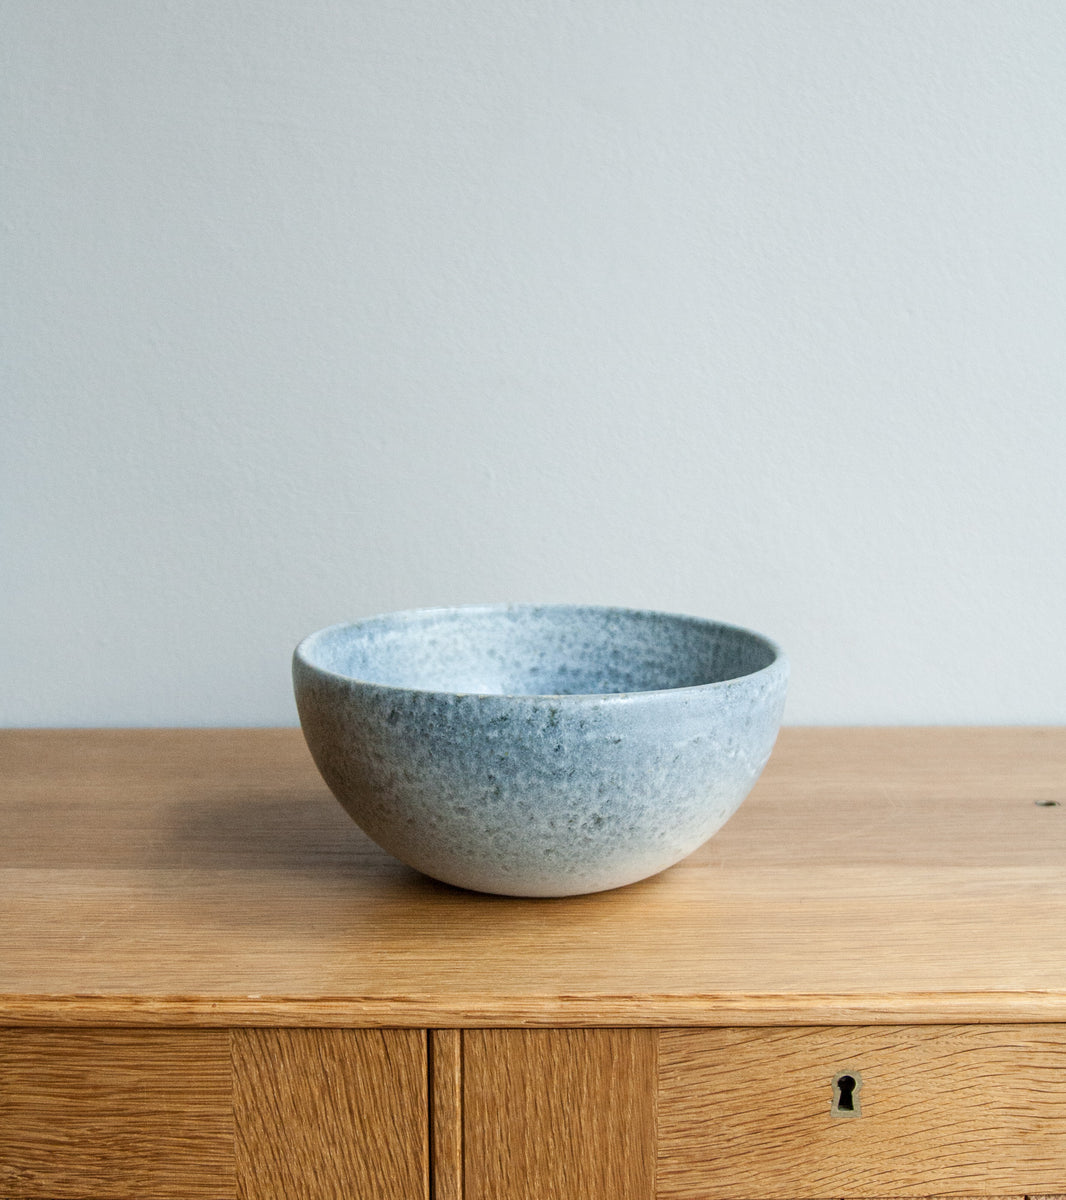 Medium Deep Bowl 10Stone Blue Glaze Kasper Würtz - Image 4